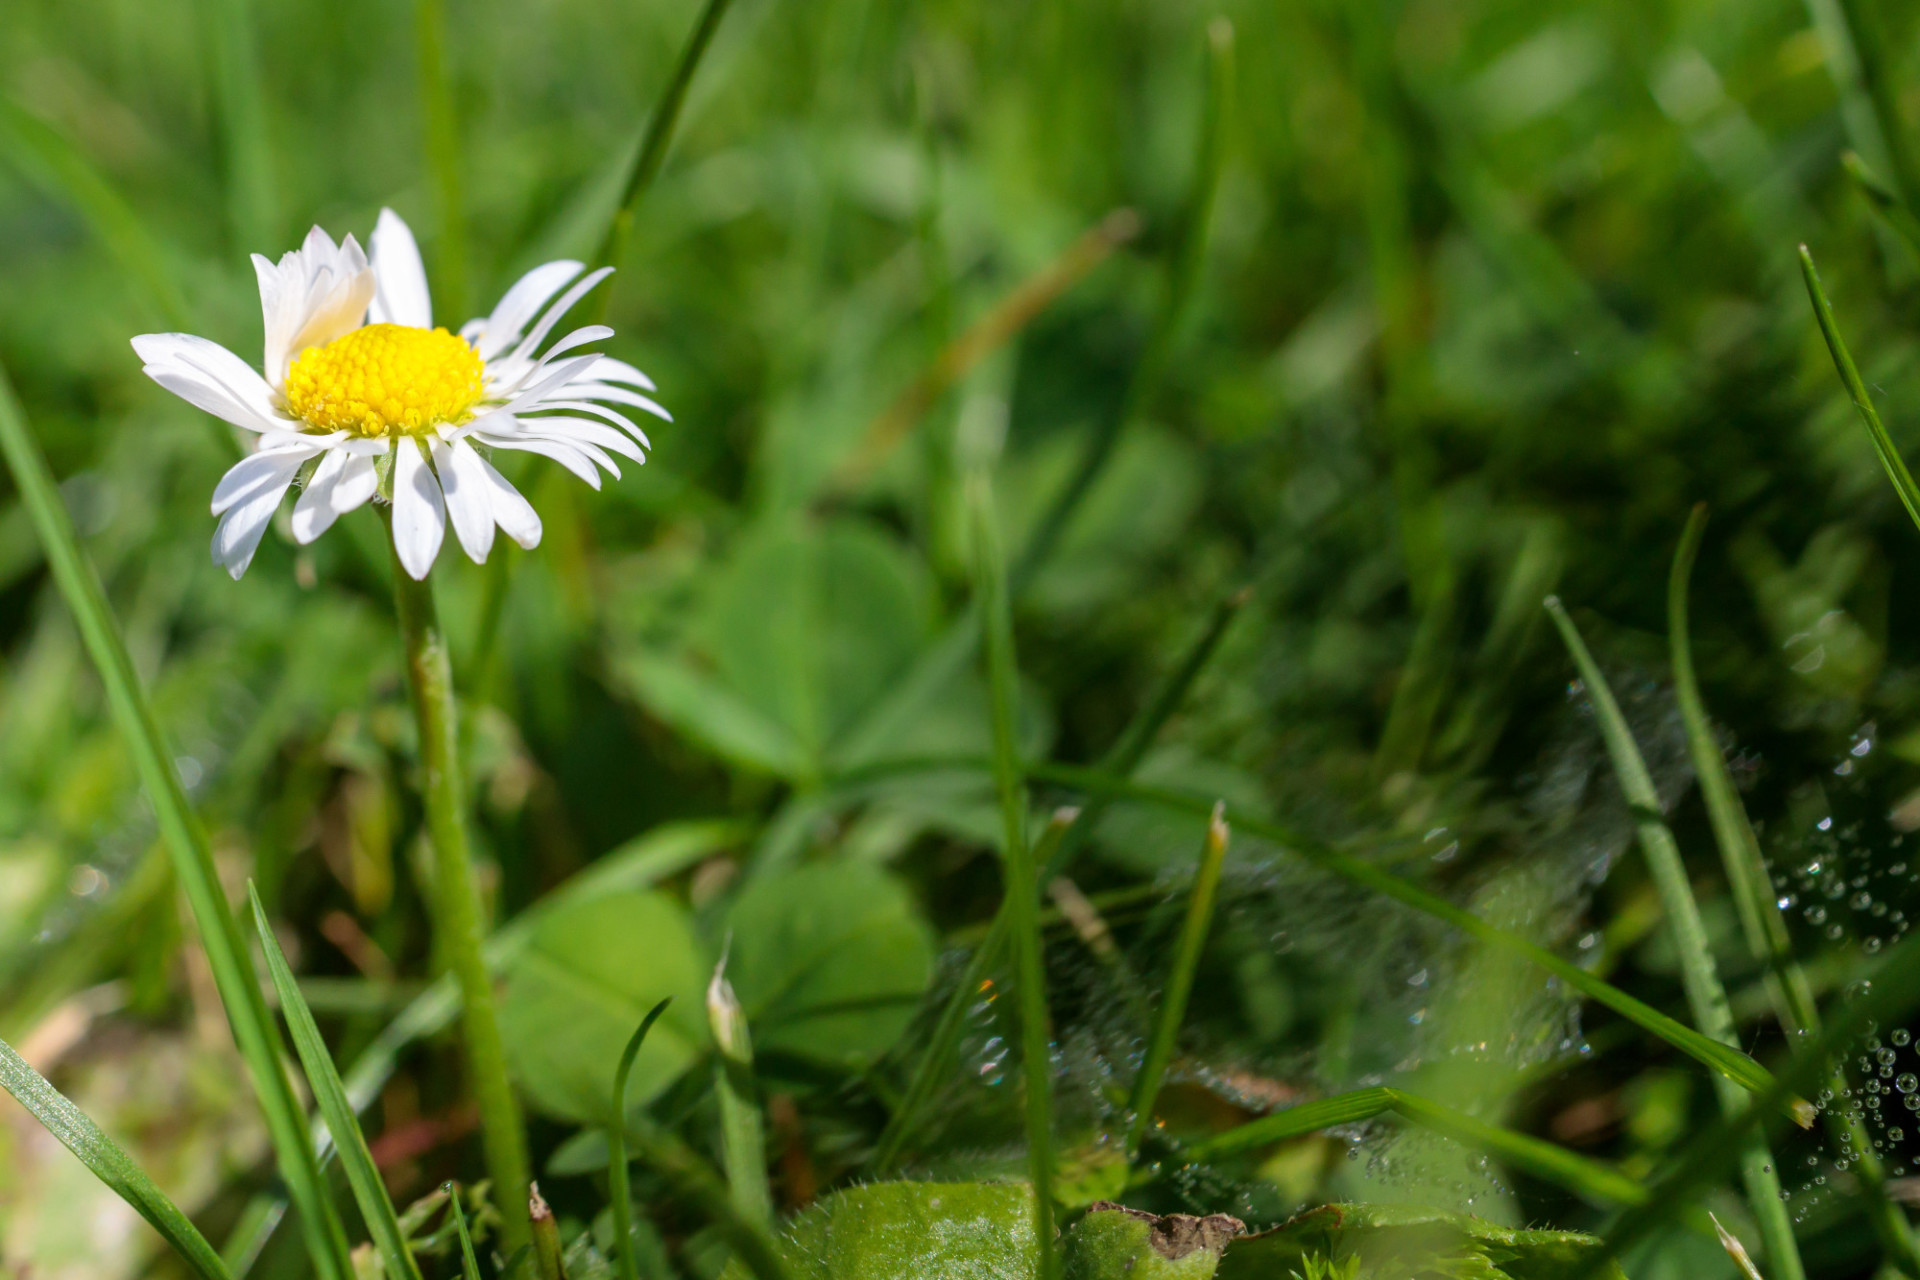 Small daisy in a meadow next to a wet spider's web